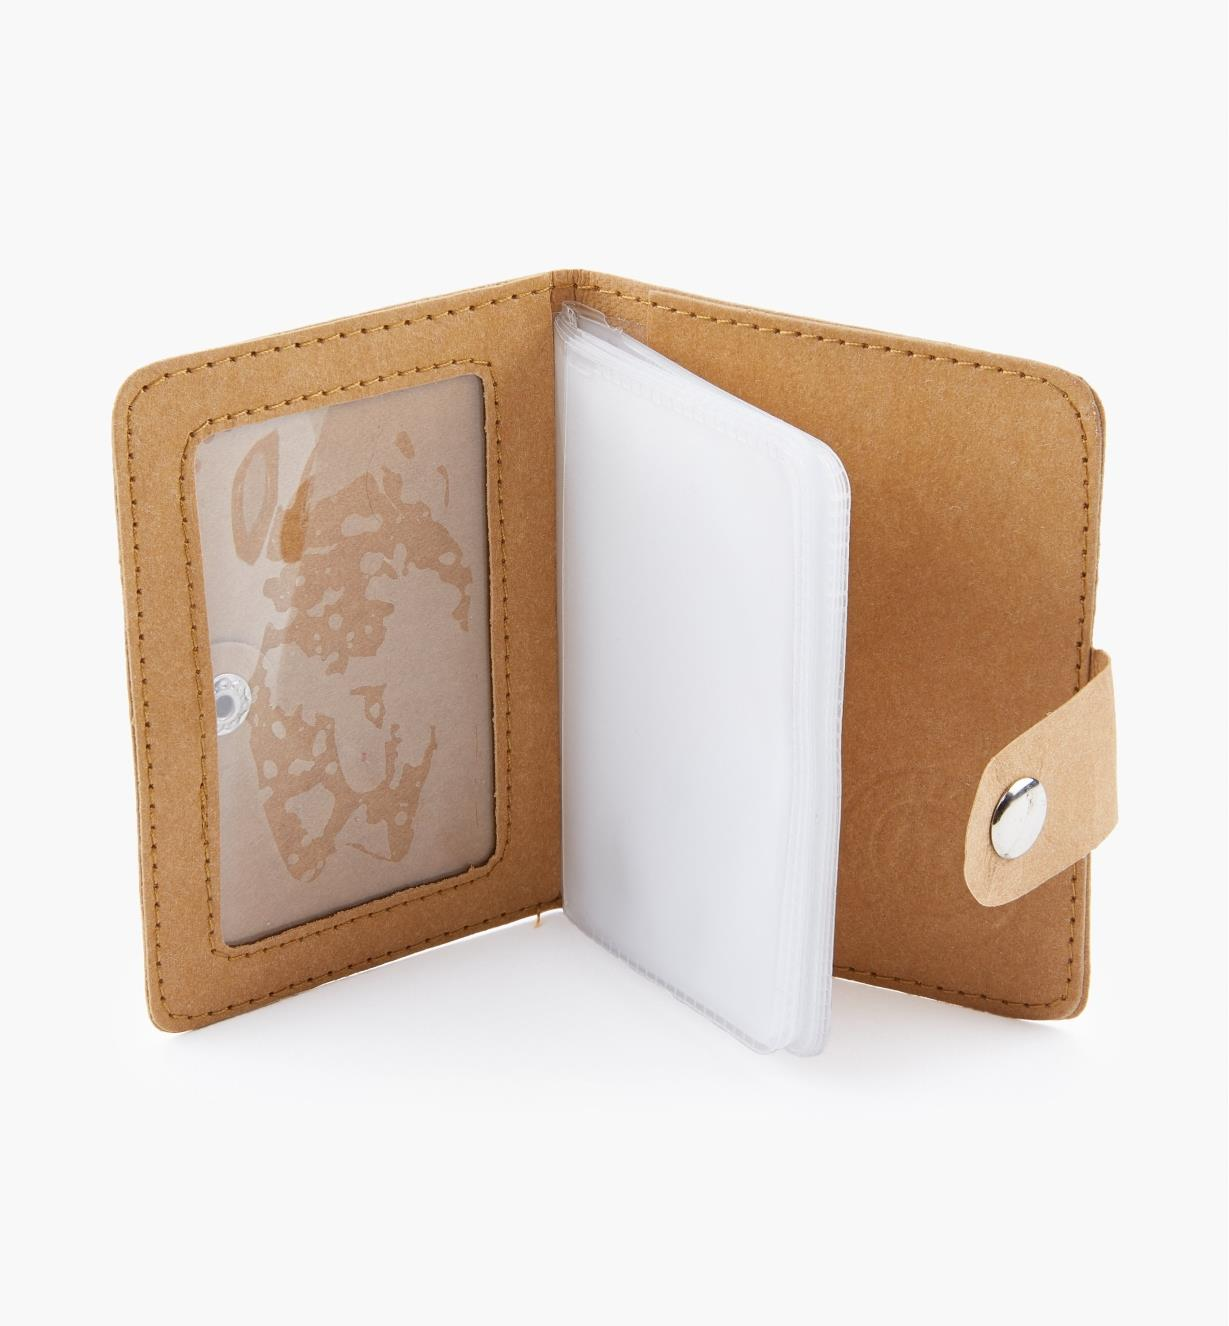 09A0937-tree-leathert-card-wallet-f-10